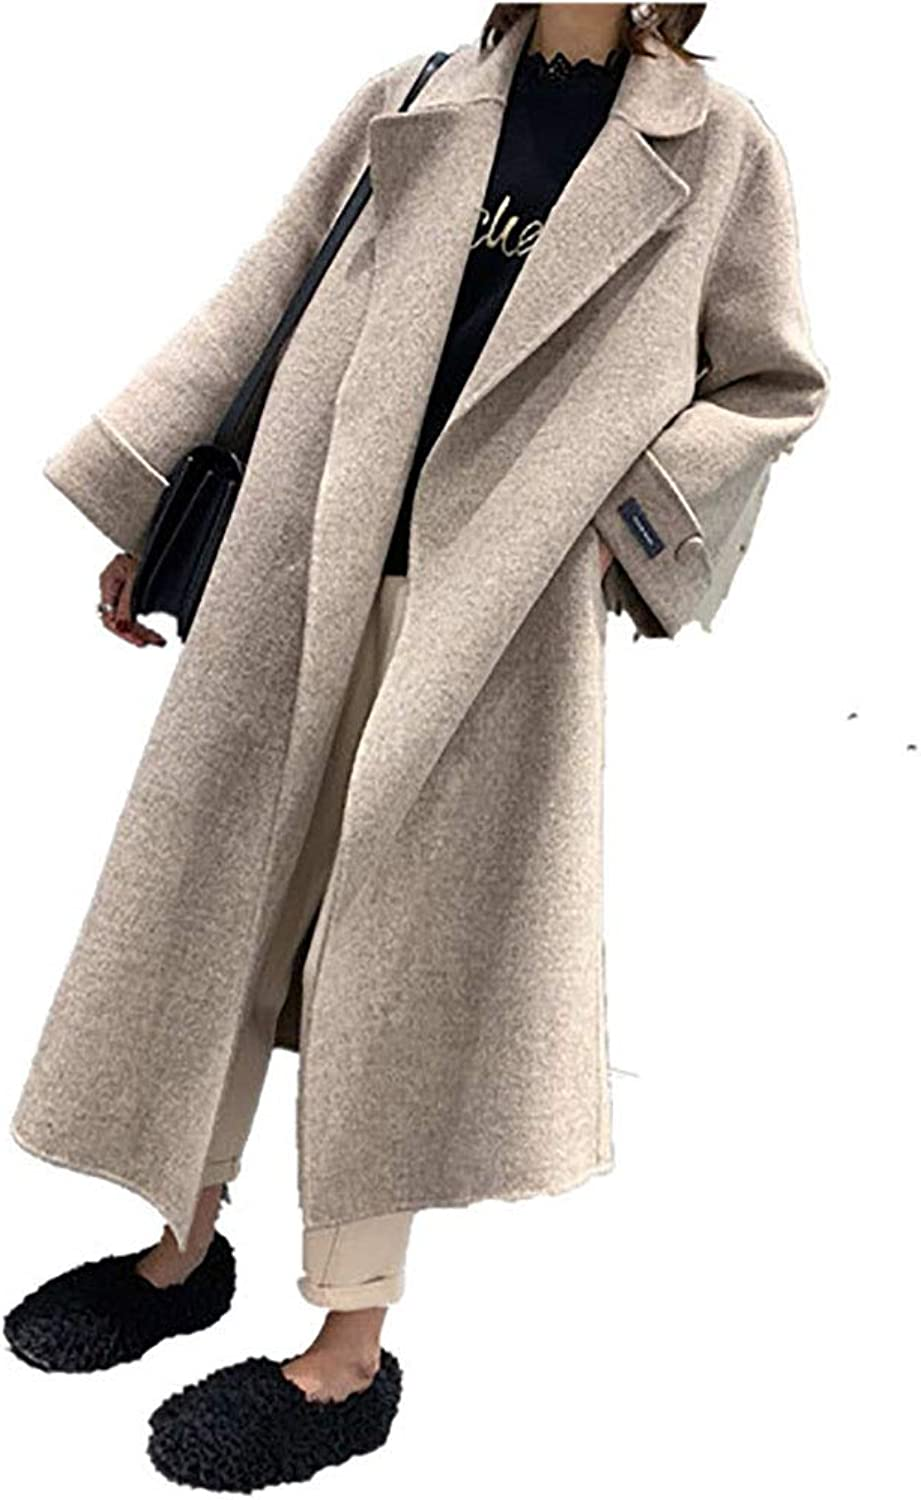 CG Women's Lapel DoubleFaced Wool Super Long Slimming Fashion Autumn and Winter Coat LS2